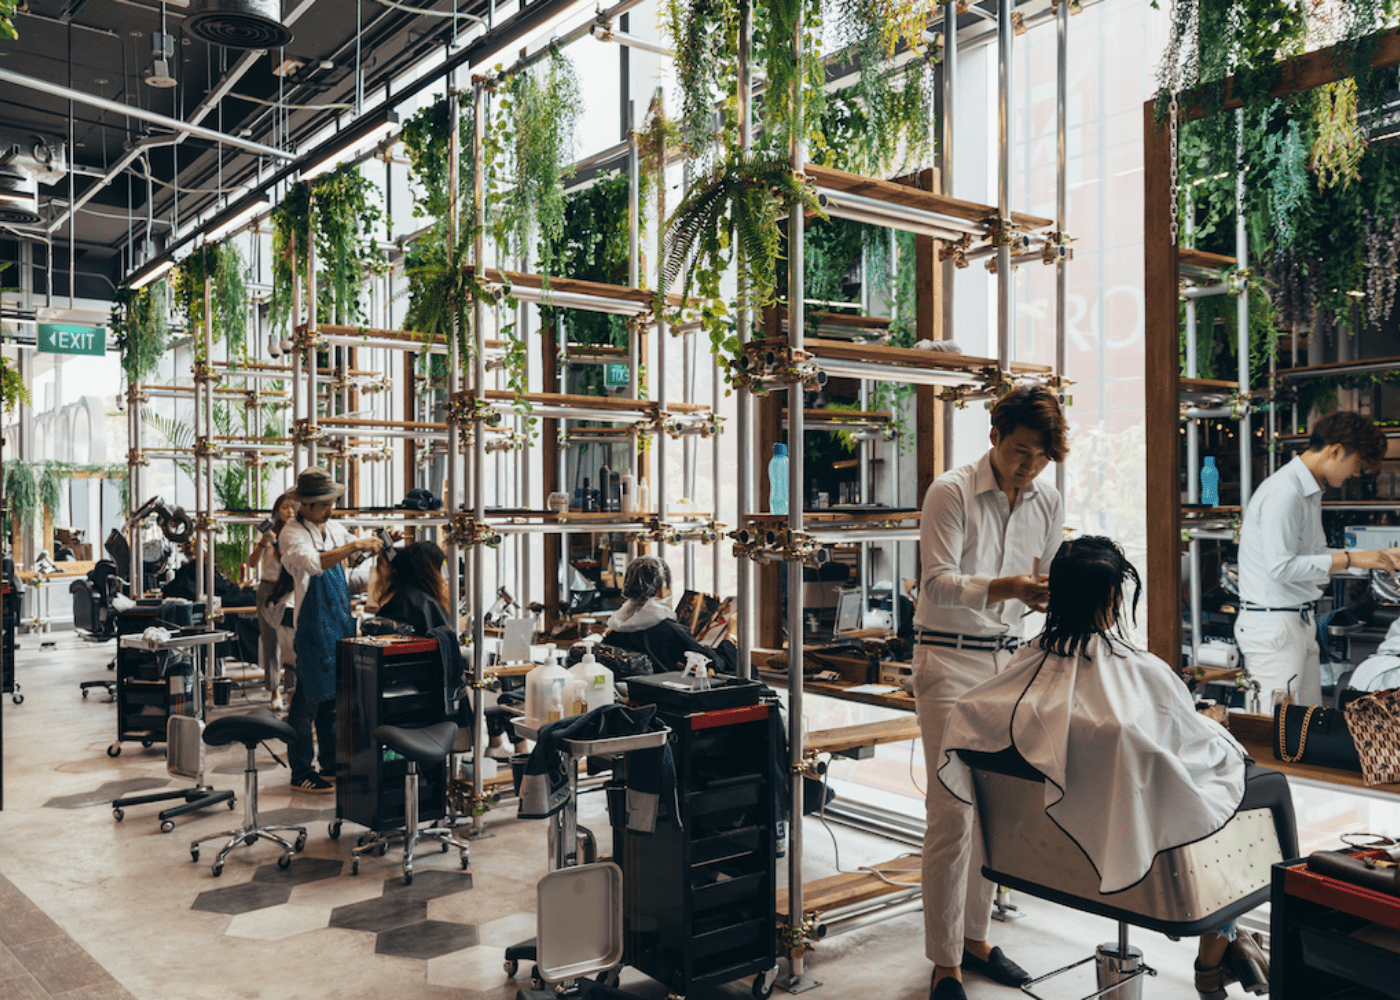 Upgrade your mane: Top hair salons in Singapore for all kinds of hair services